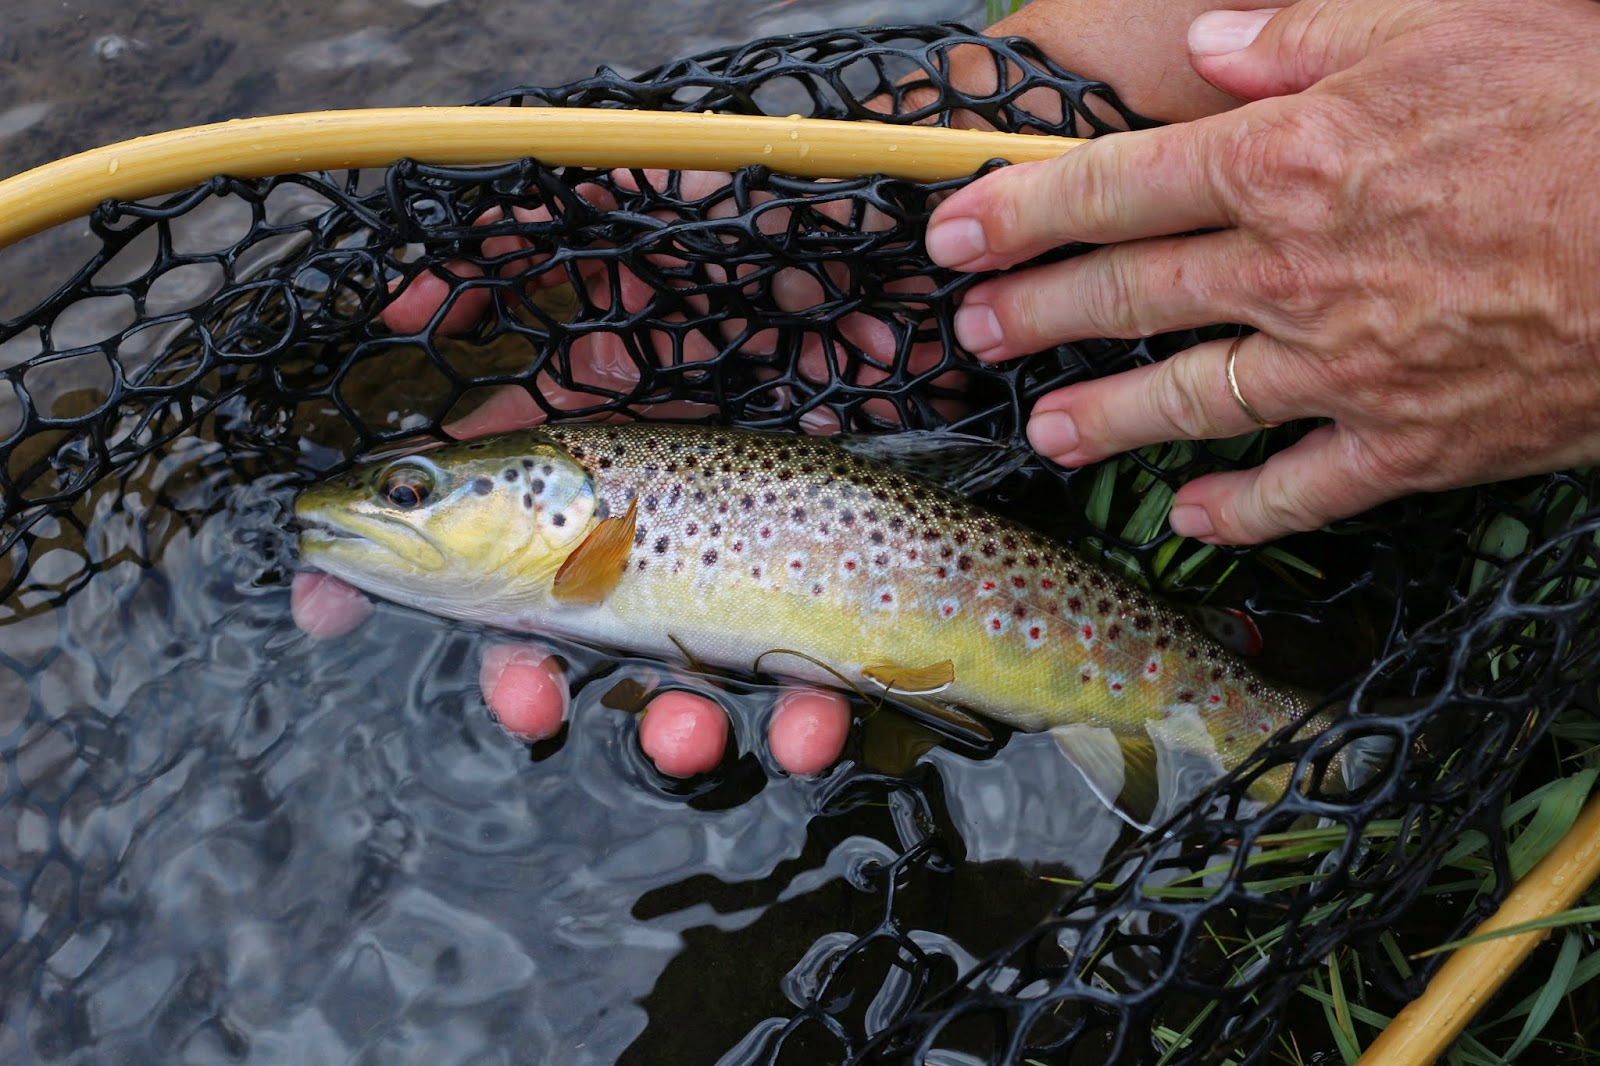 Fly+fish+the+Roaring+Fork+River+in+Colorado+with+Jay+Scott+Outdoors+14.JPG